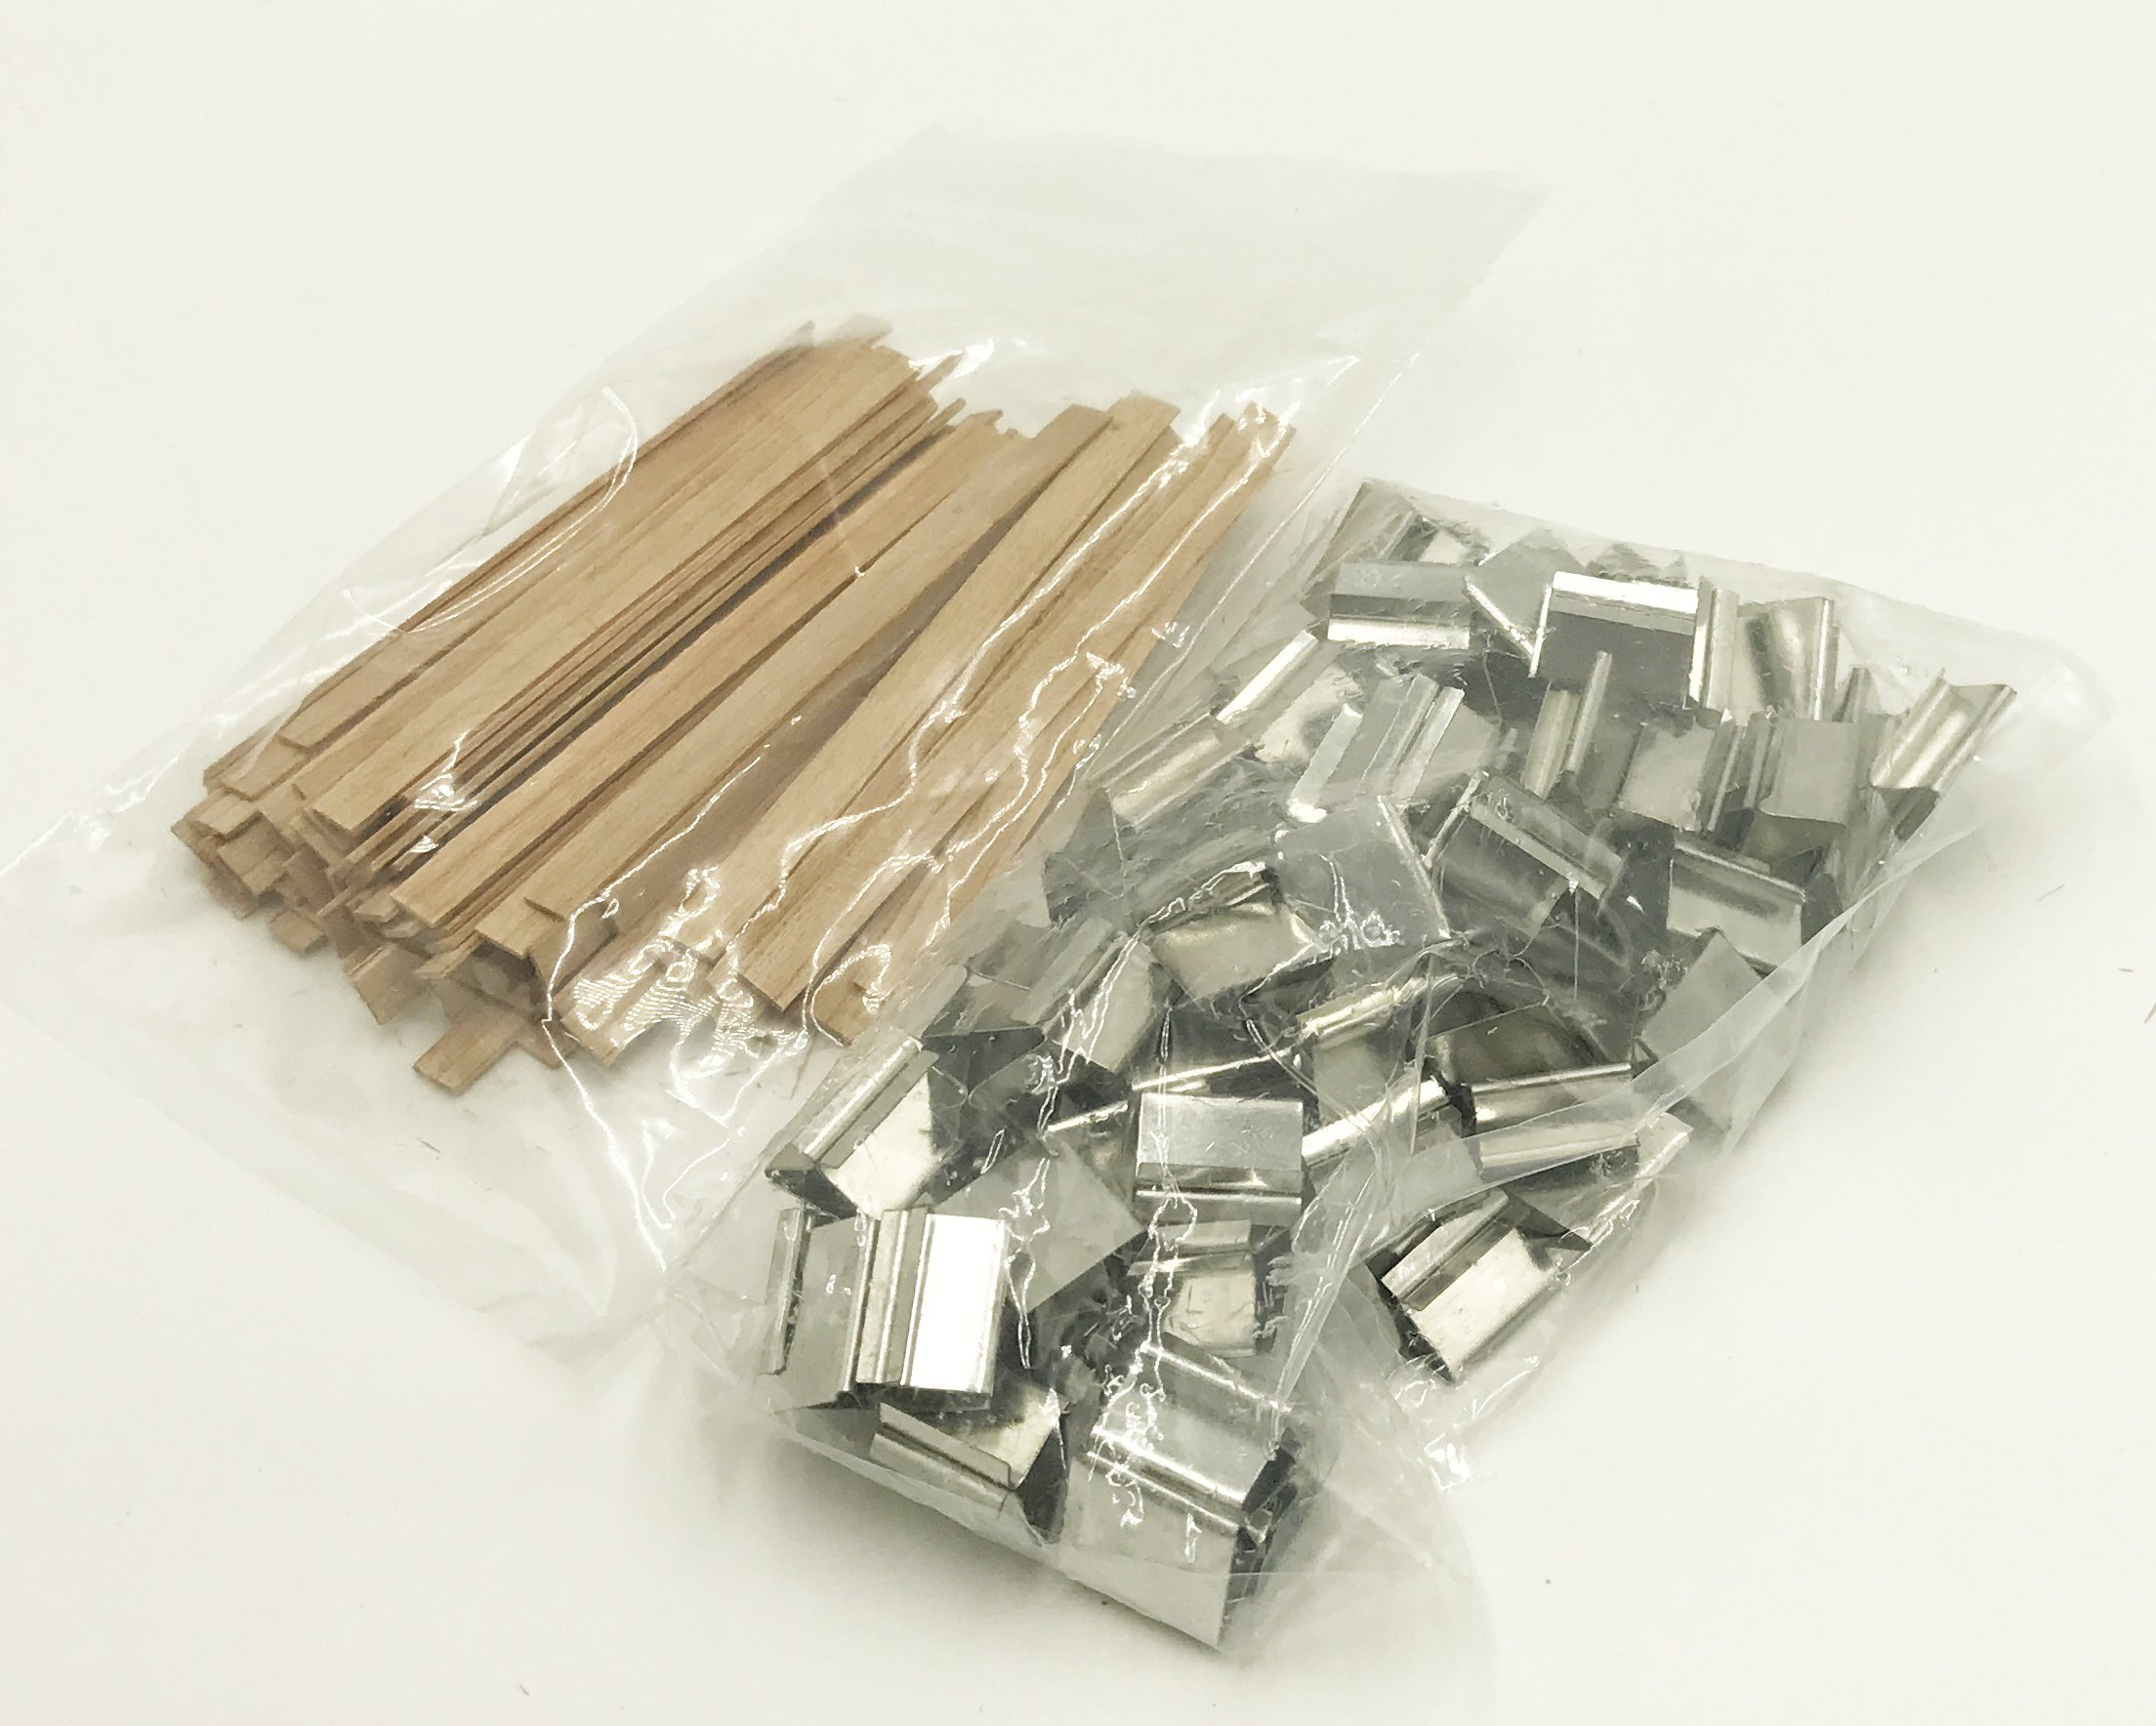 Candlewic 100pk of Small Cherry Wood Wicks 1/4'' width 3. 5'' length (. 04 thickness)